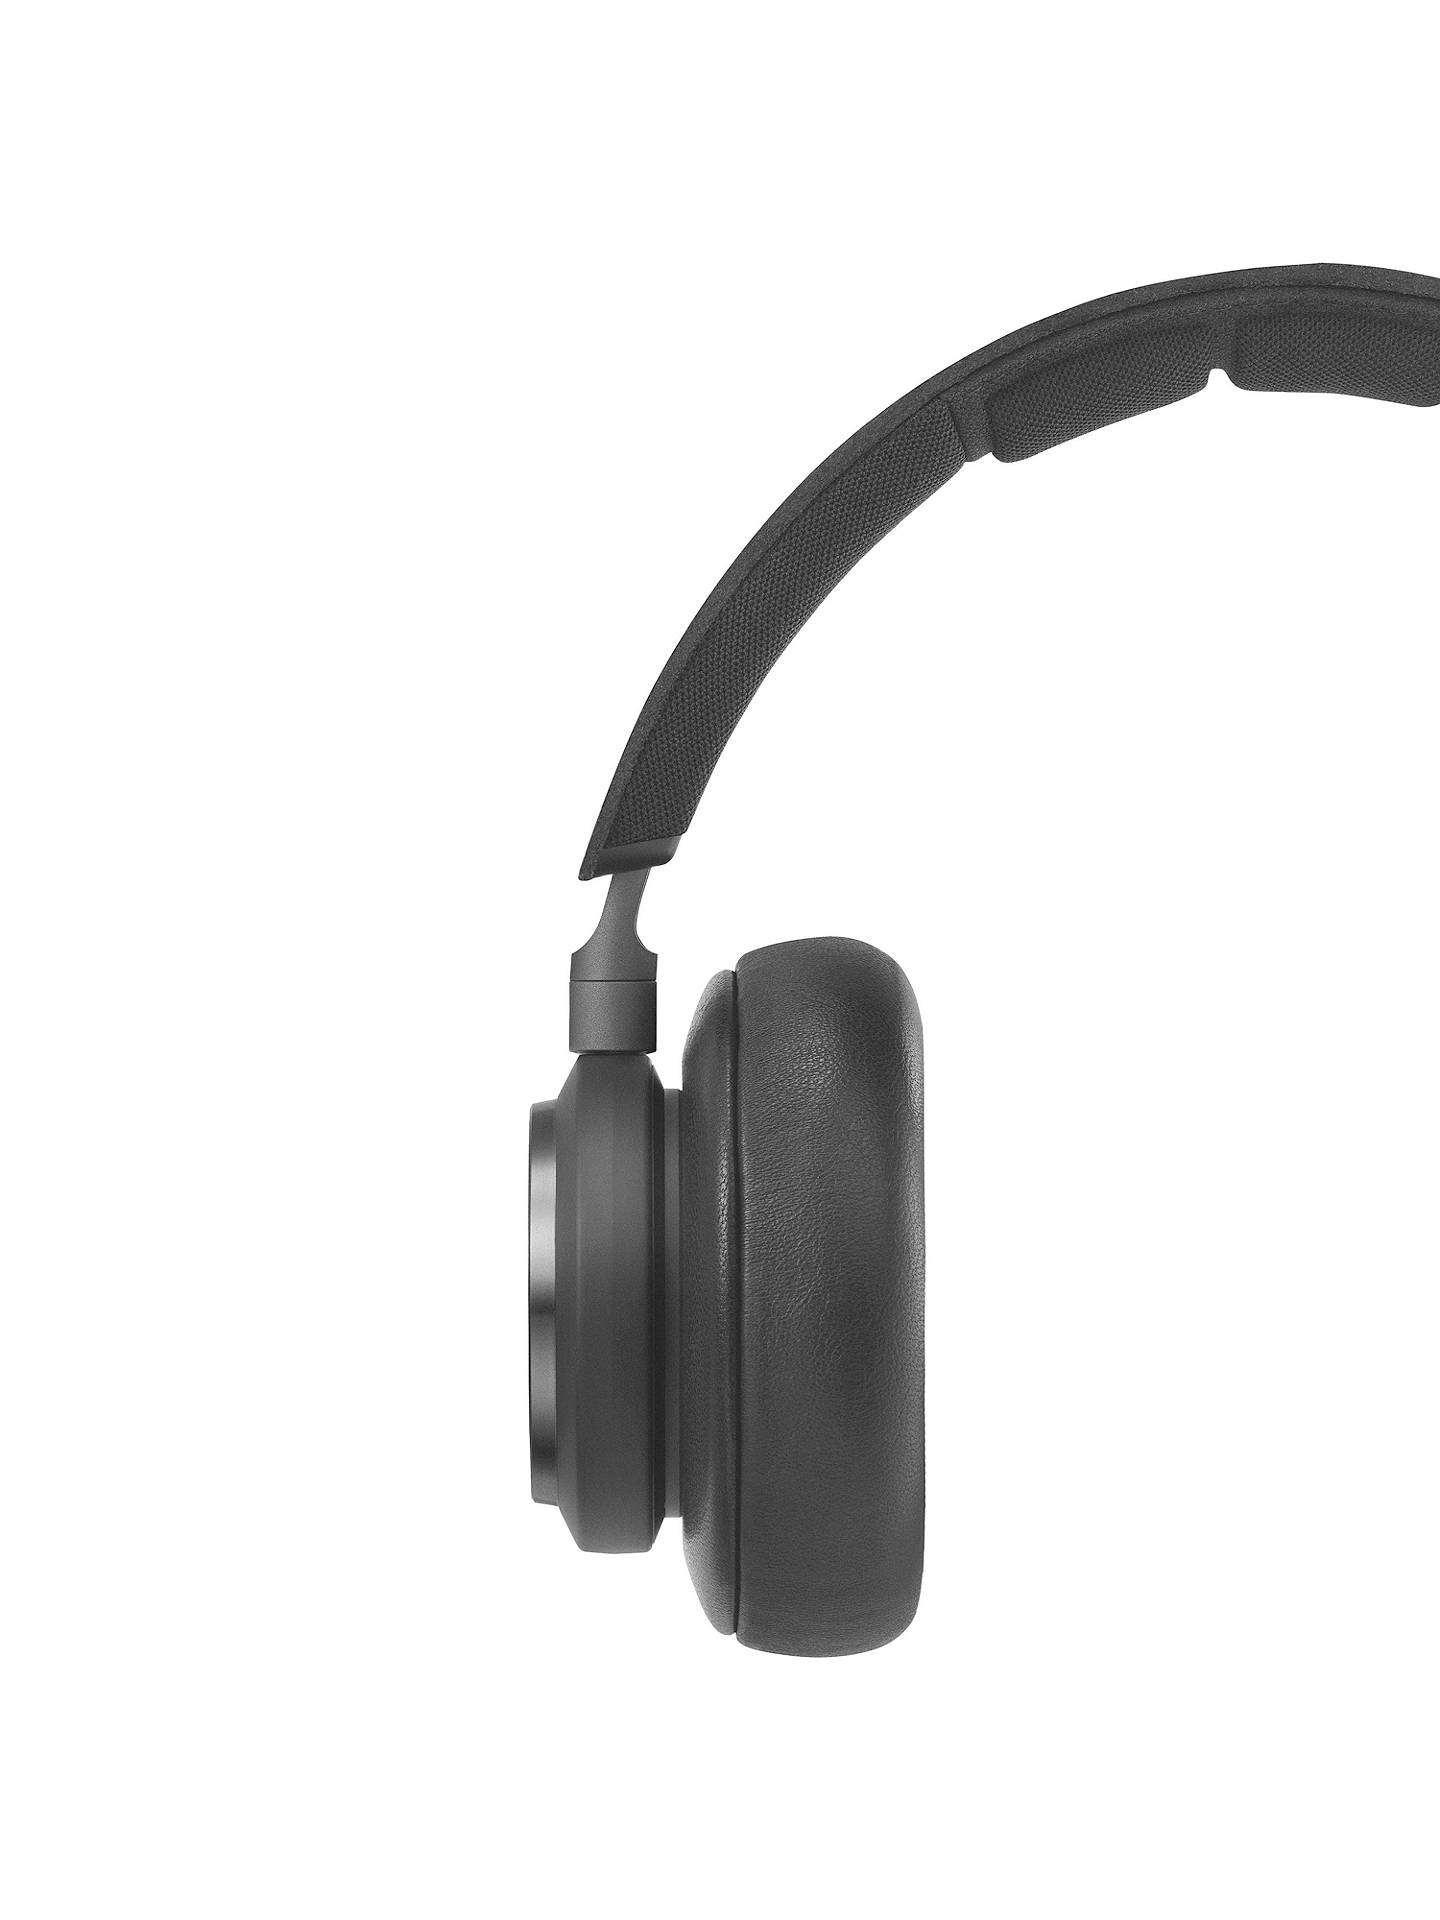 a181d626ee4 ... Buy Bang & Olufsen Beoplay H9 Wireless Bluetooth Active Noise  Cancelling Over-Ear Headphones with ...